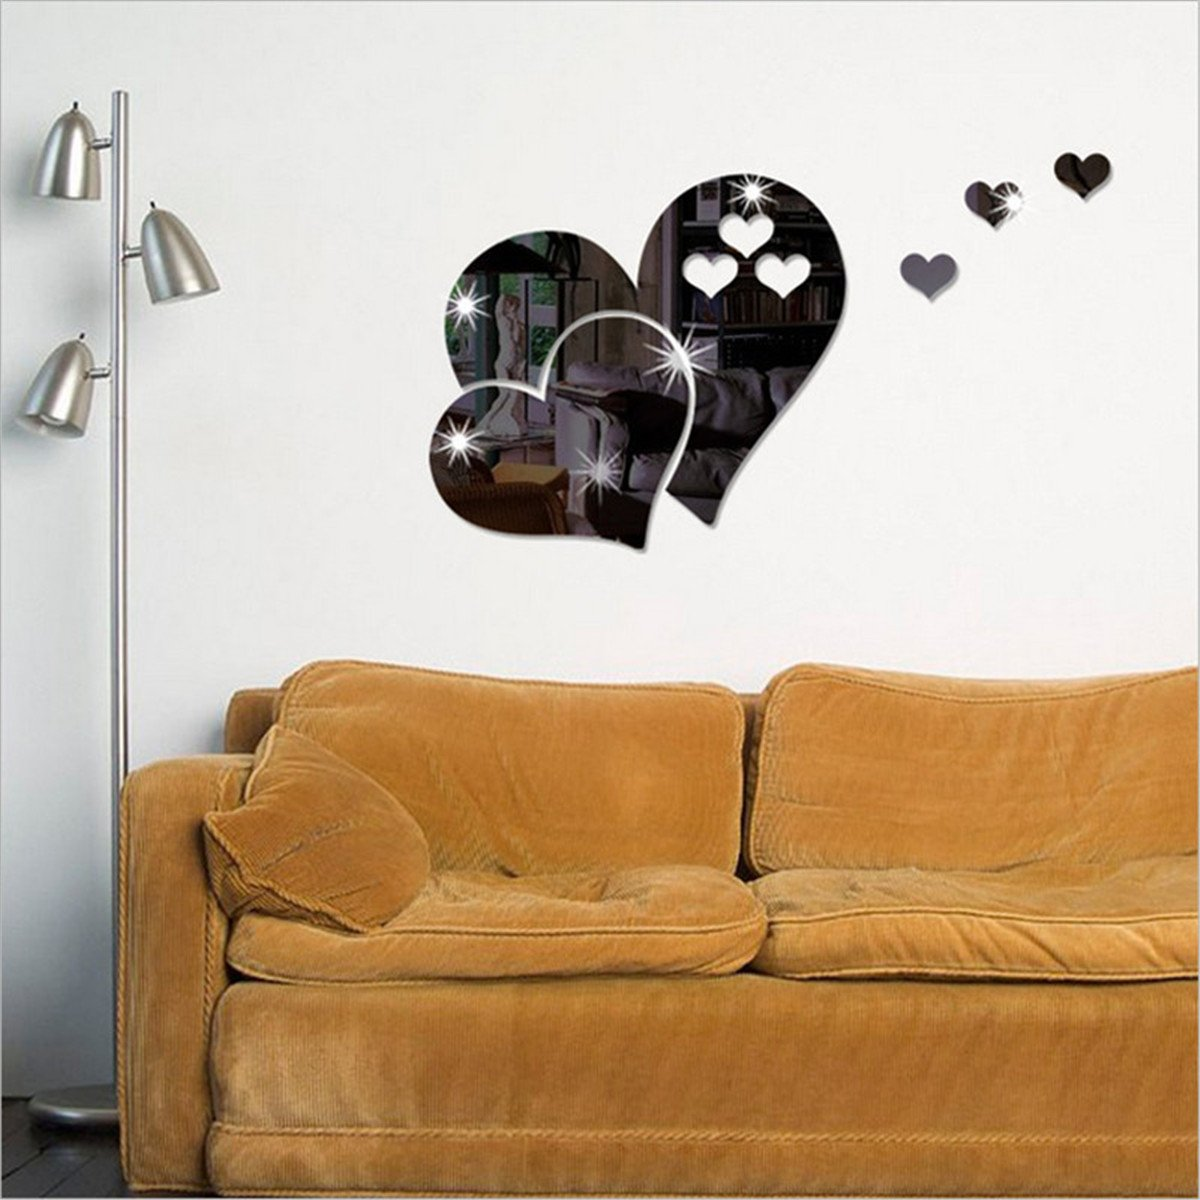 Clearance!! ZOMUSA 3D Mirror Love Hearts Wall Sticker Decal DIY Home Room Art Mural Decor (Black)